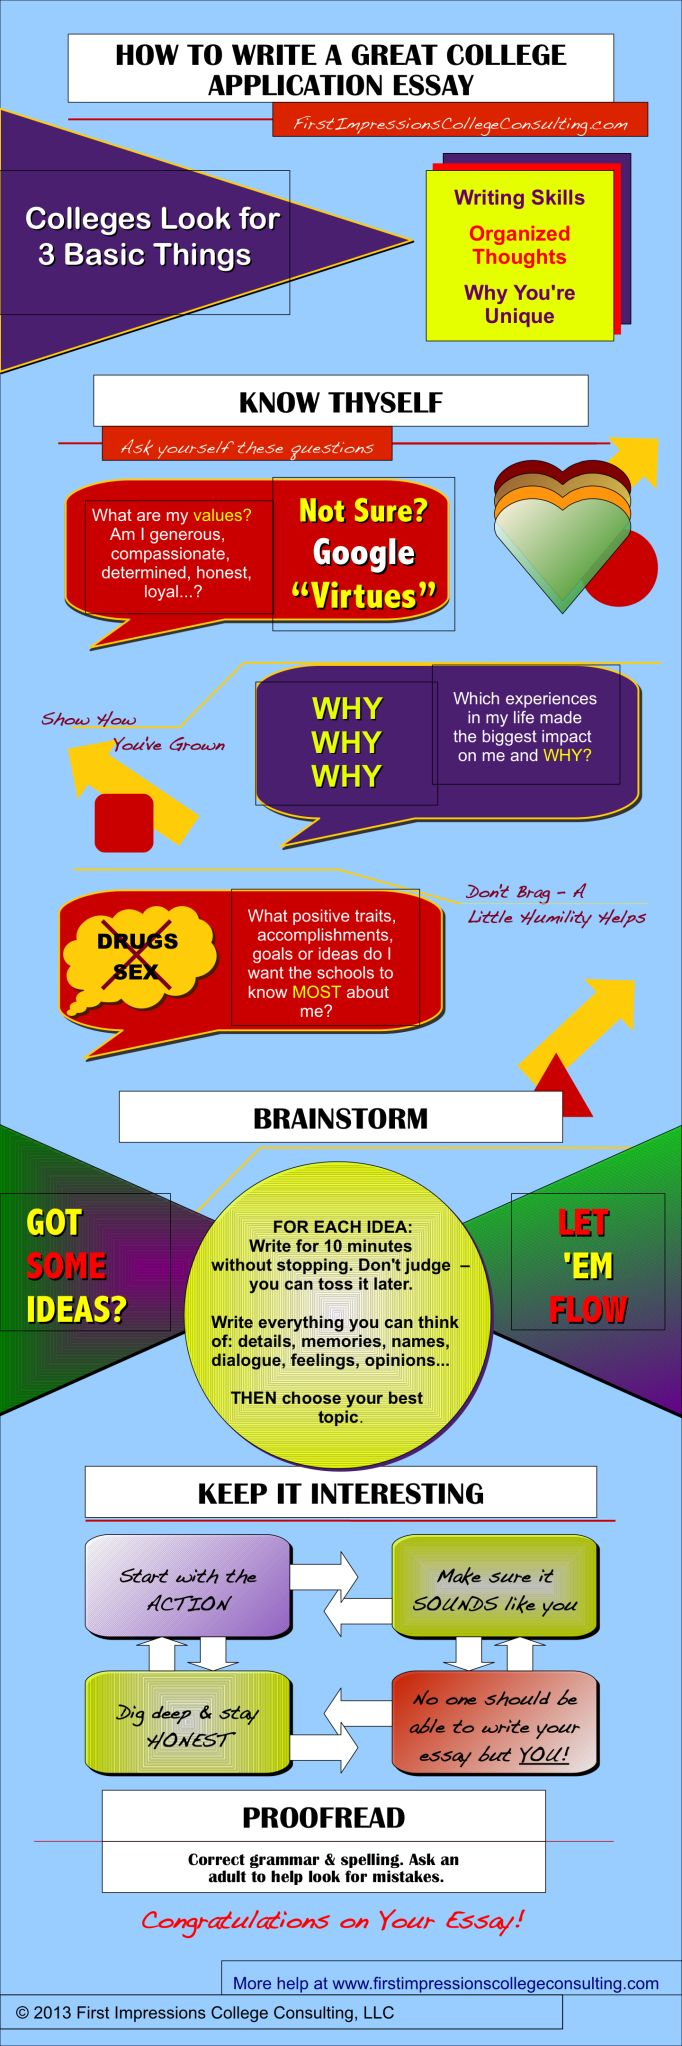 17 best ideas about essay writing tips essay tips here it is my first infographic i won t tell you how long it took me but it was worth it enjoy sharon epstein is owner of first impressions college